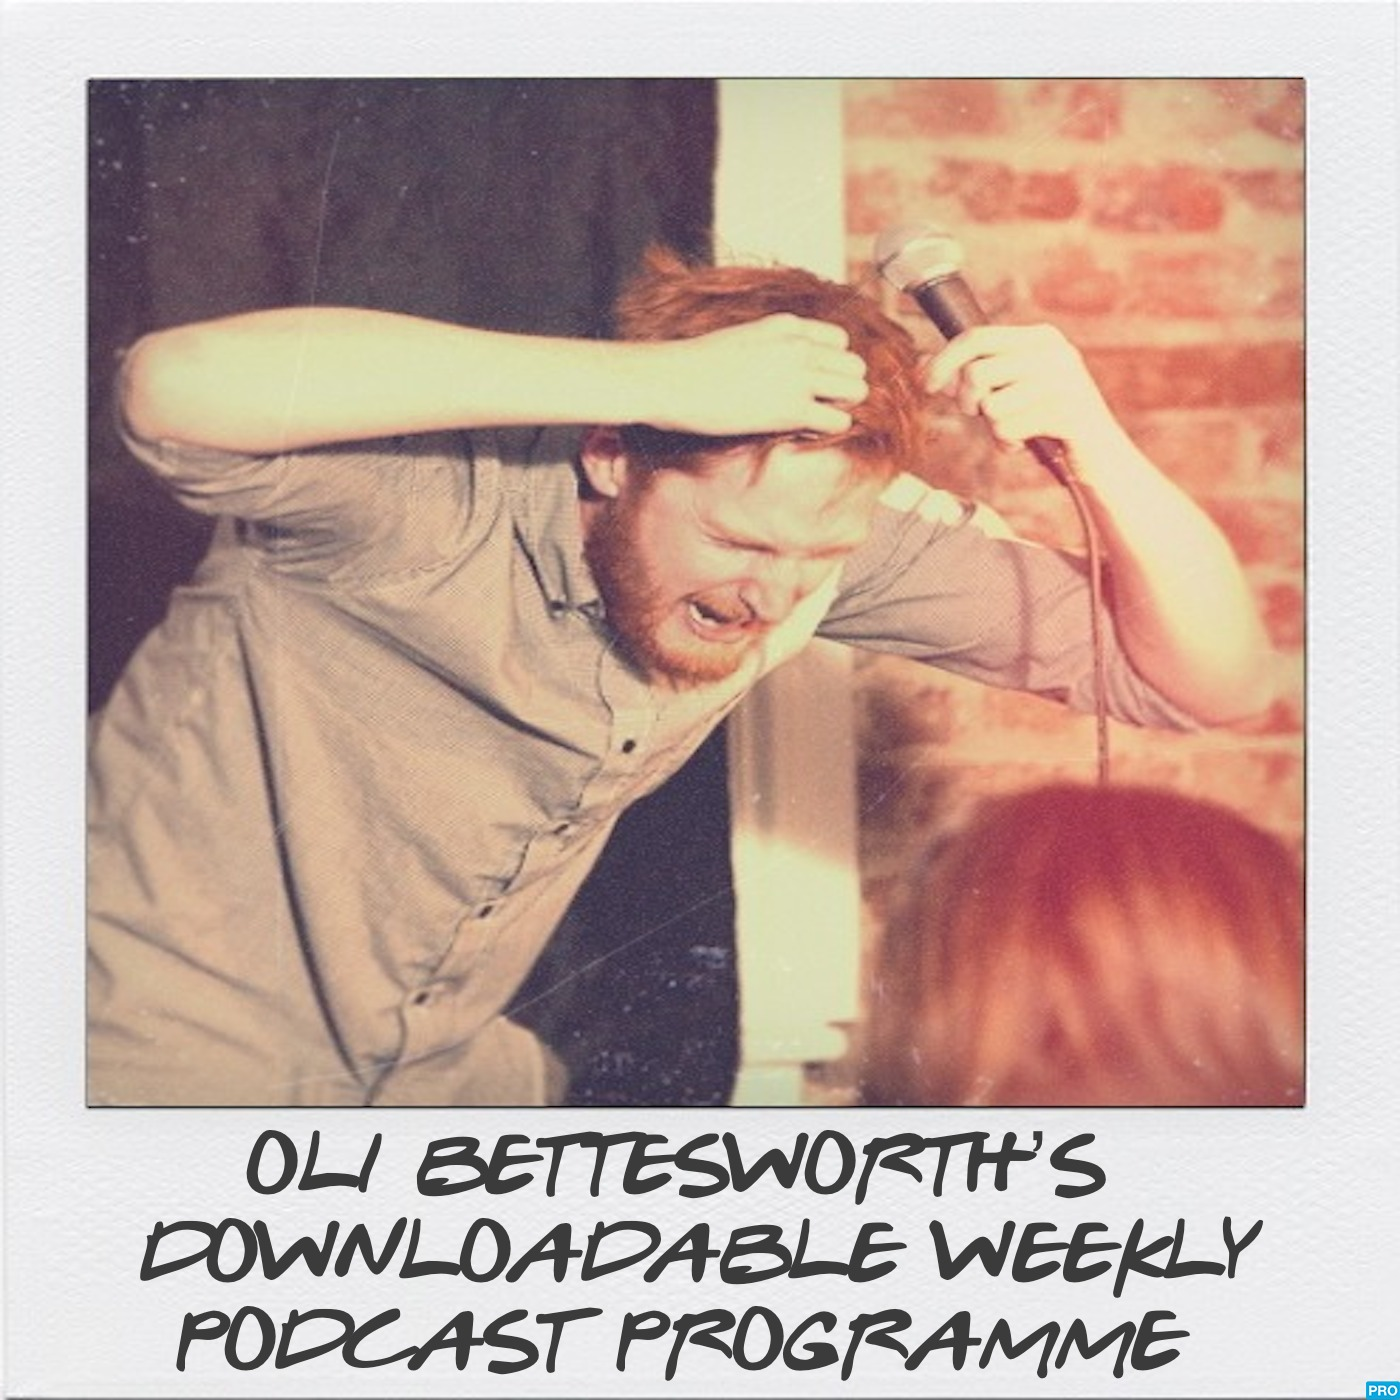 Oli Bettesworth's Downloadable Weekly Podcast Programme